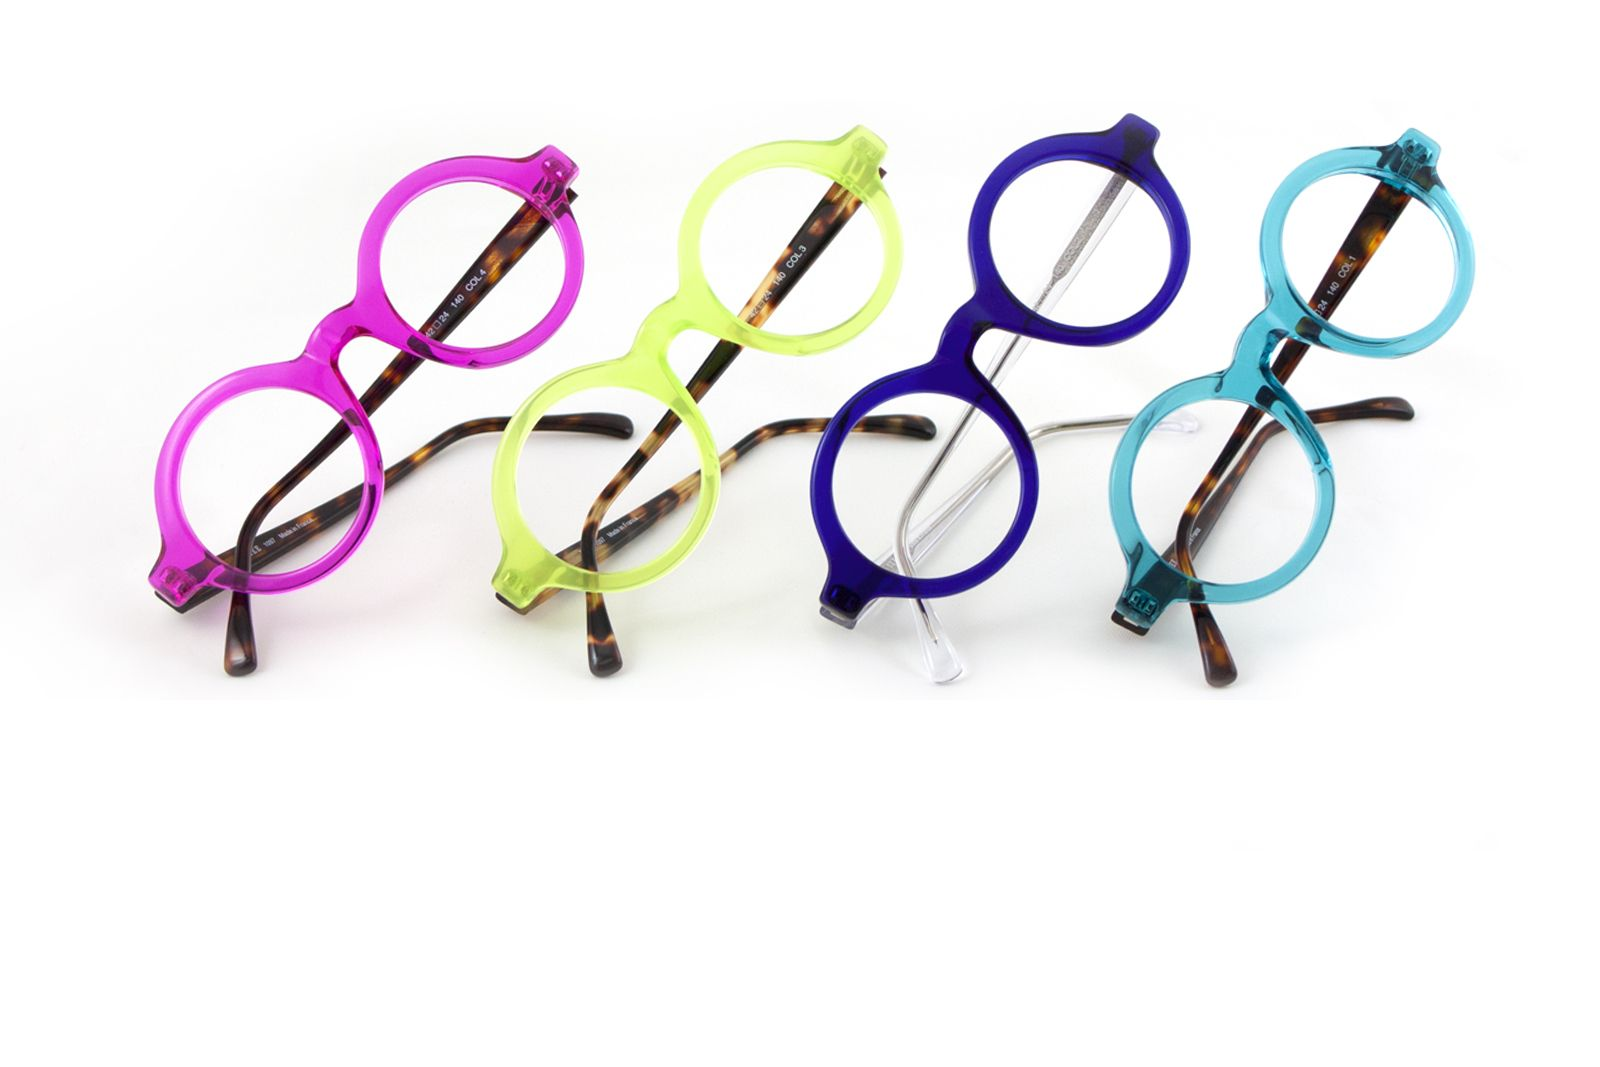 SEE 1097 :: HOT PINK/TORTOISE, NEON GREEN/TOKYO TORTOISE, PURPLE/CRYSTAL, TURQUOISE/TORTOISE :: $289 - Includes Rx Lenses* class=